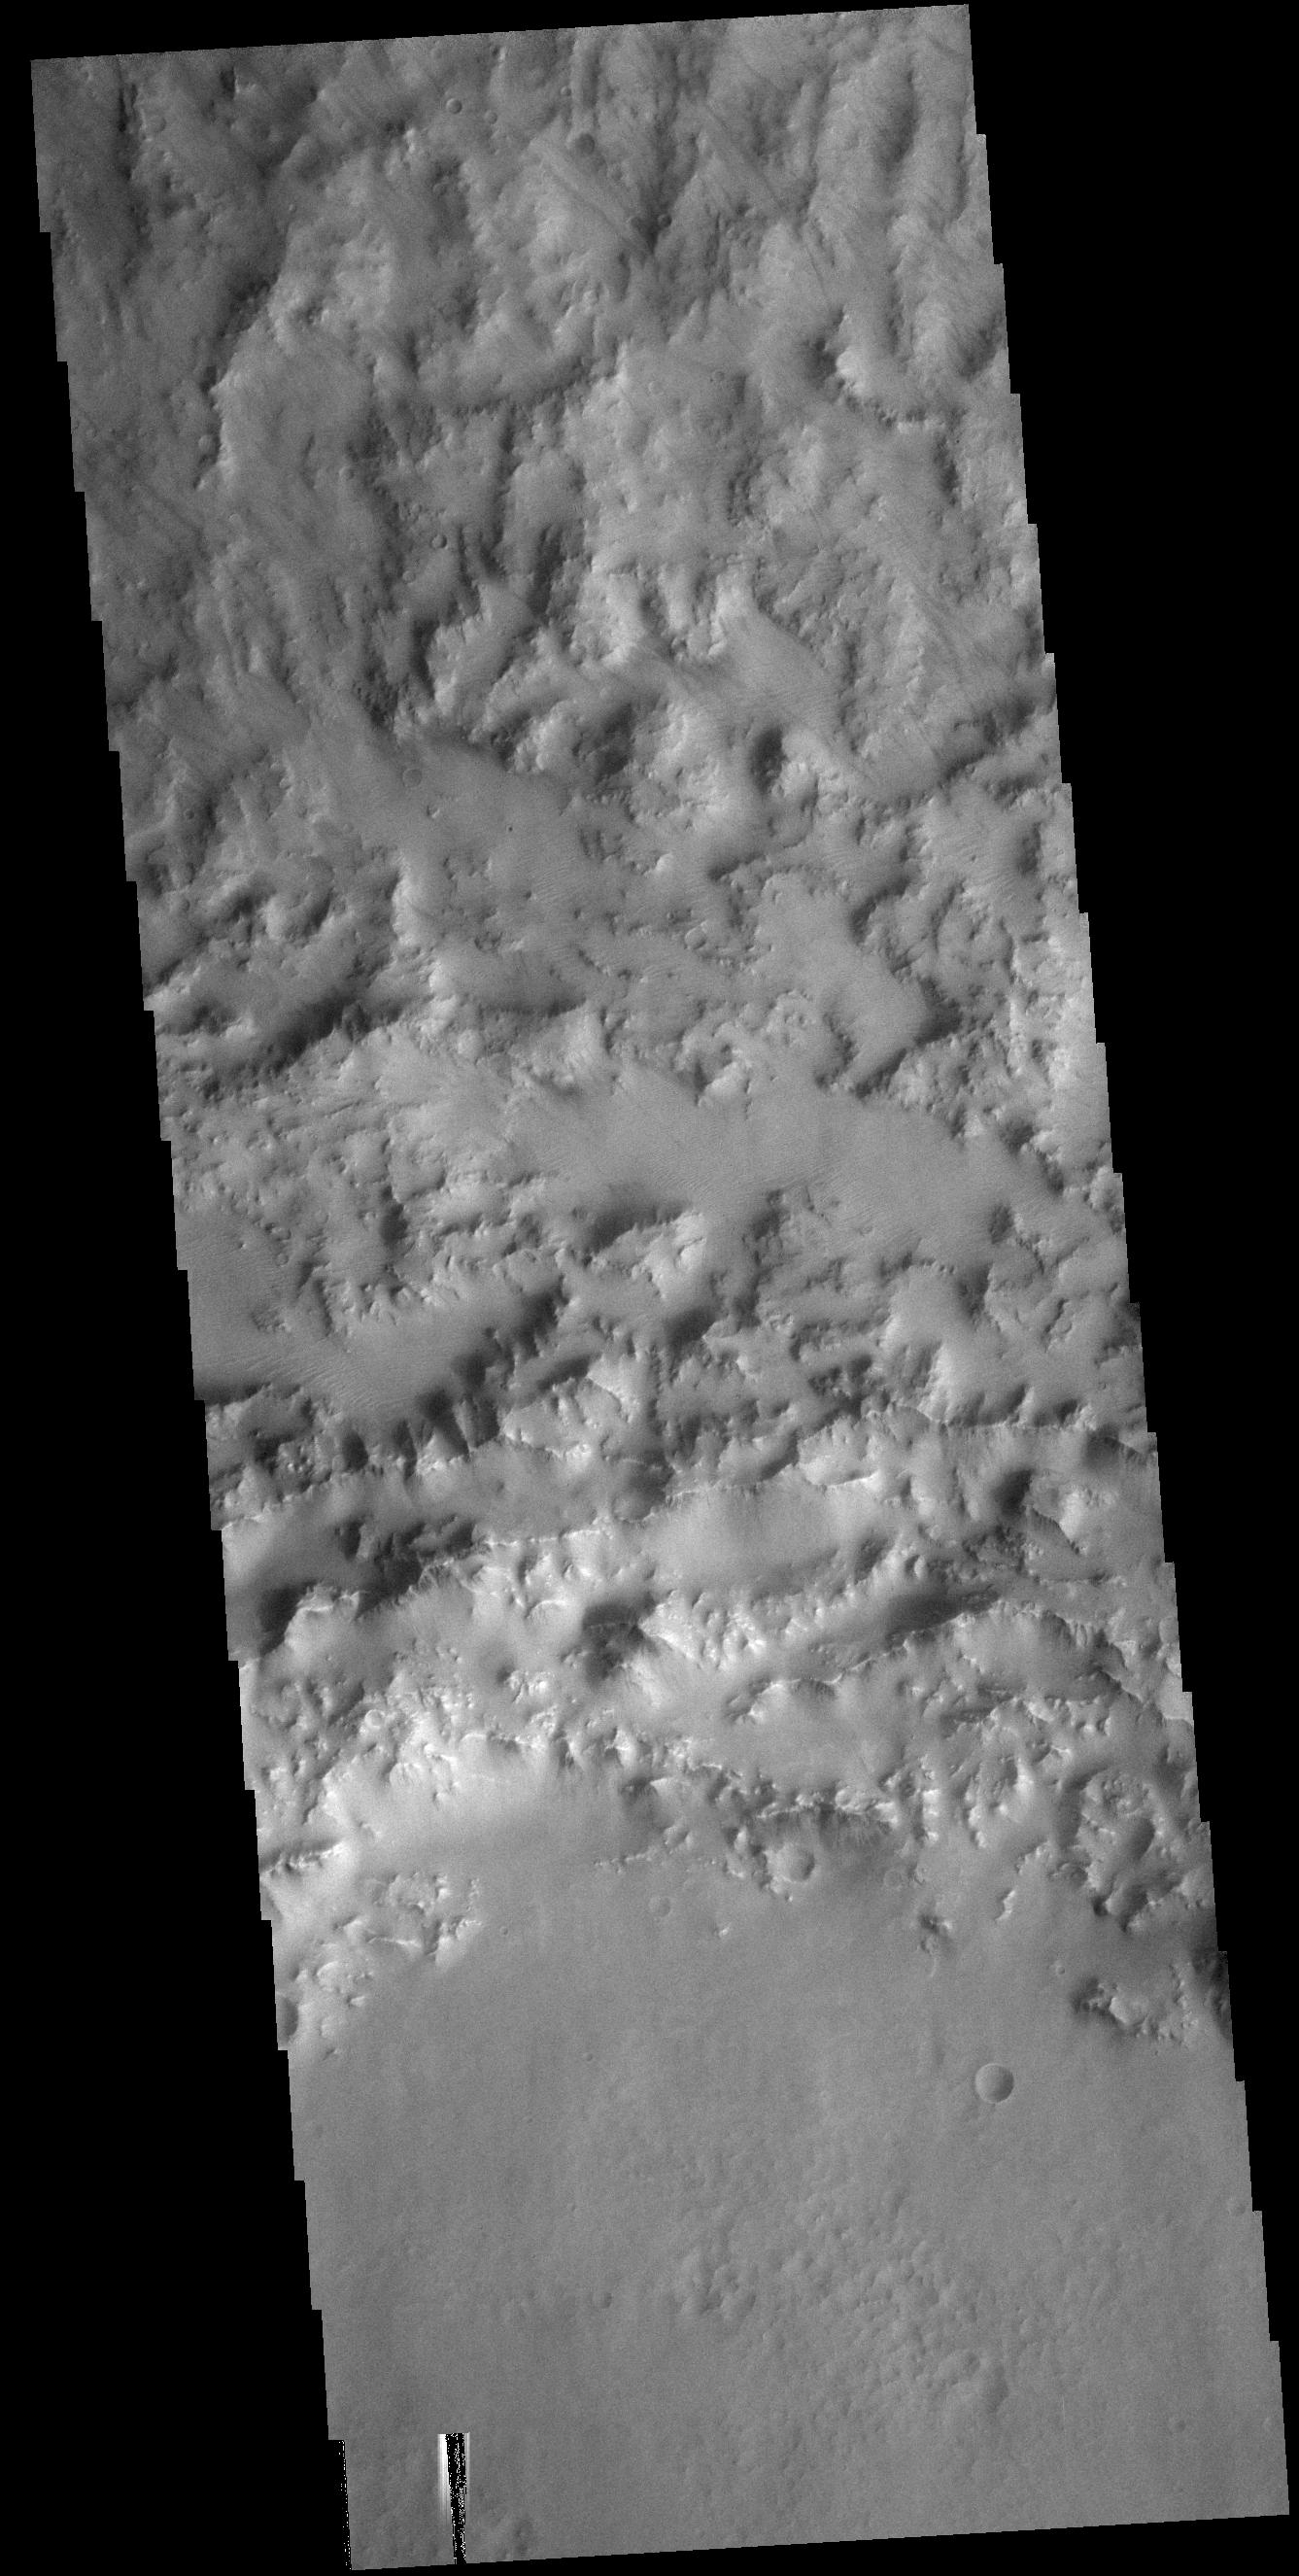 This image from NASAs Mars Odyssey shows part of the northern rim of an unnamed crater in Hesperia Planum.